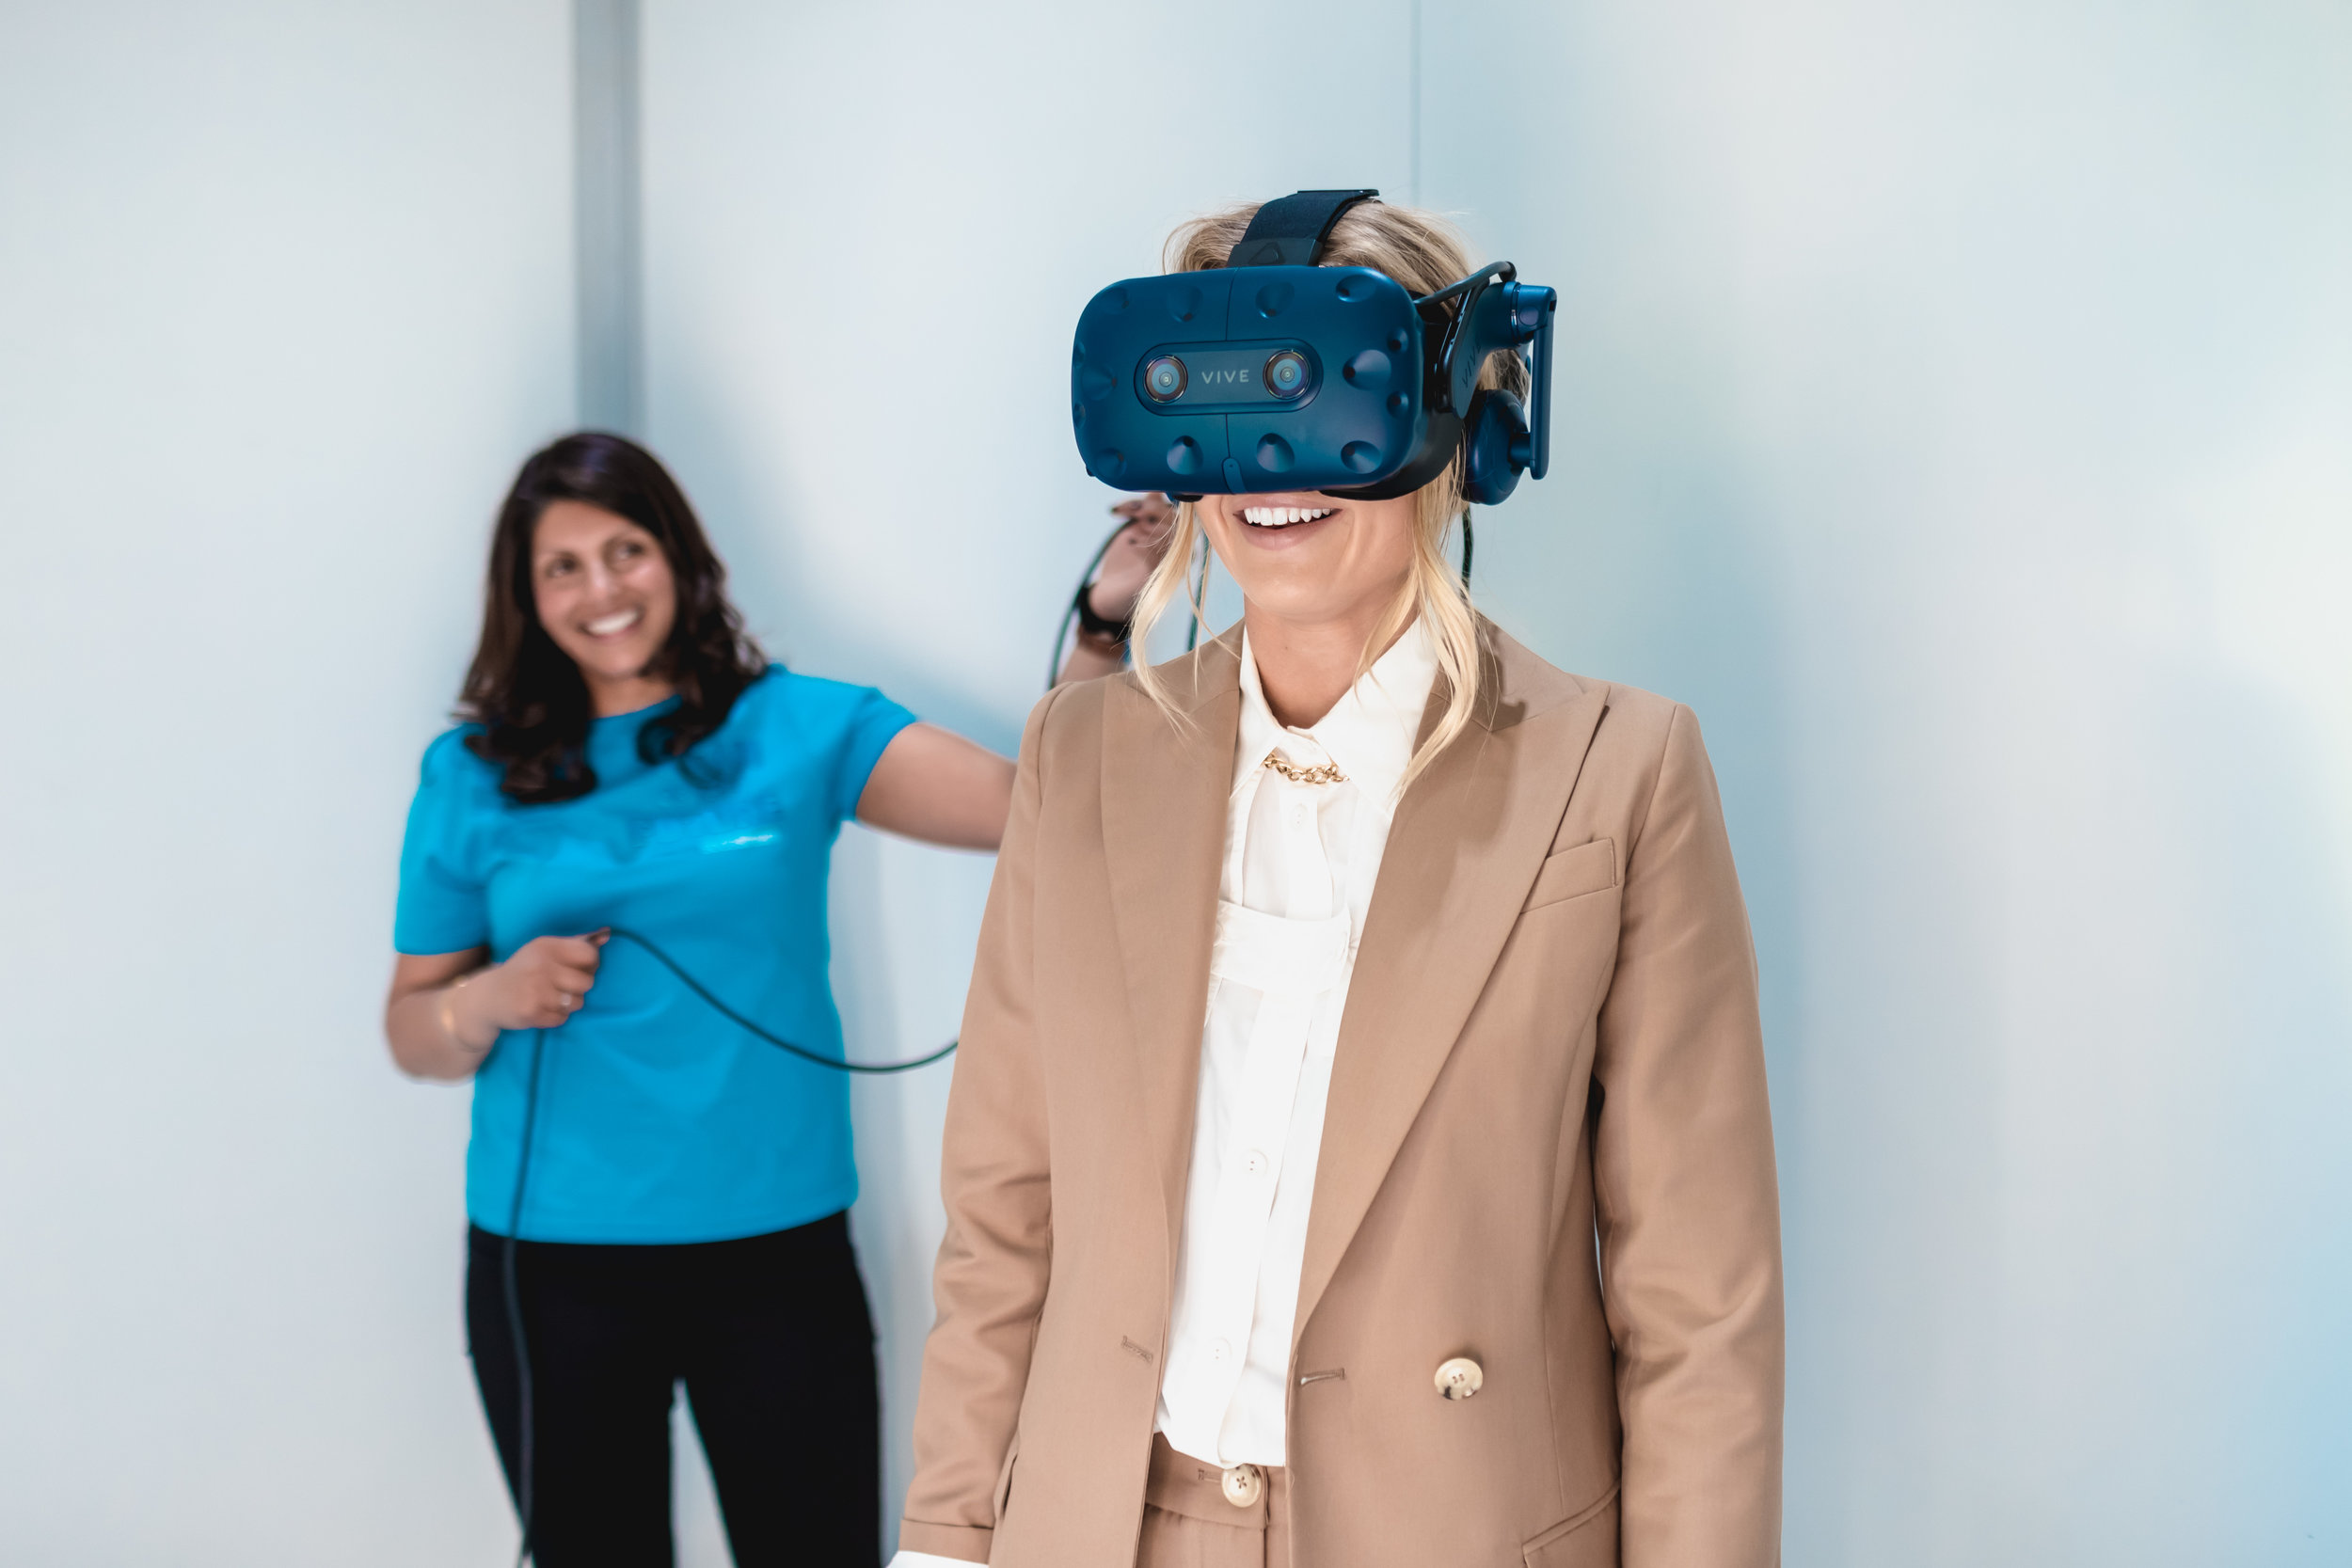 This is me wearing the SodaStream VR headset. You'd be stunned at what I can see!